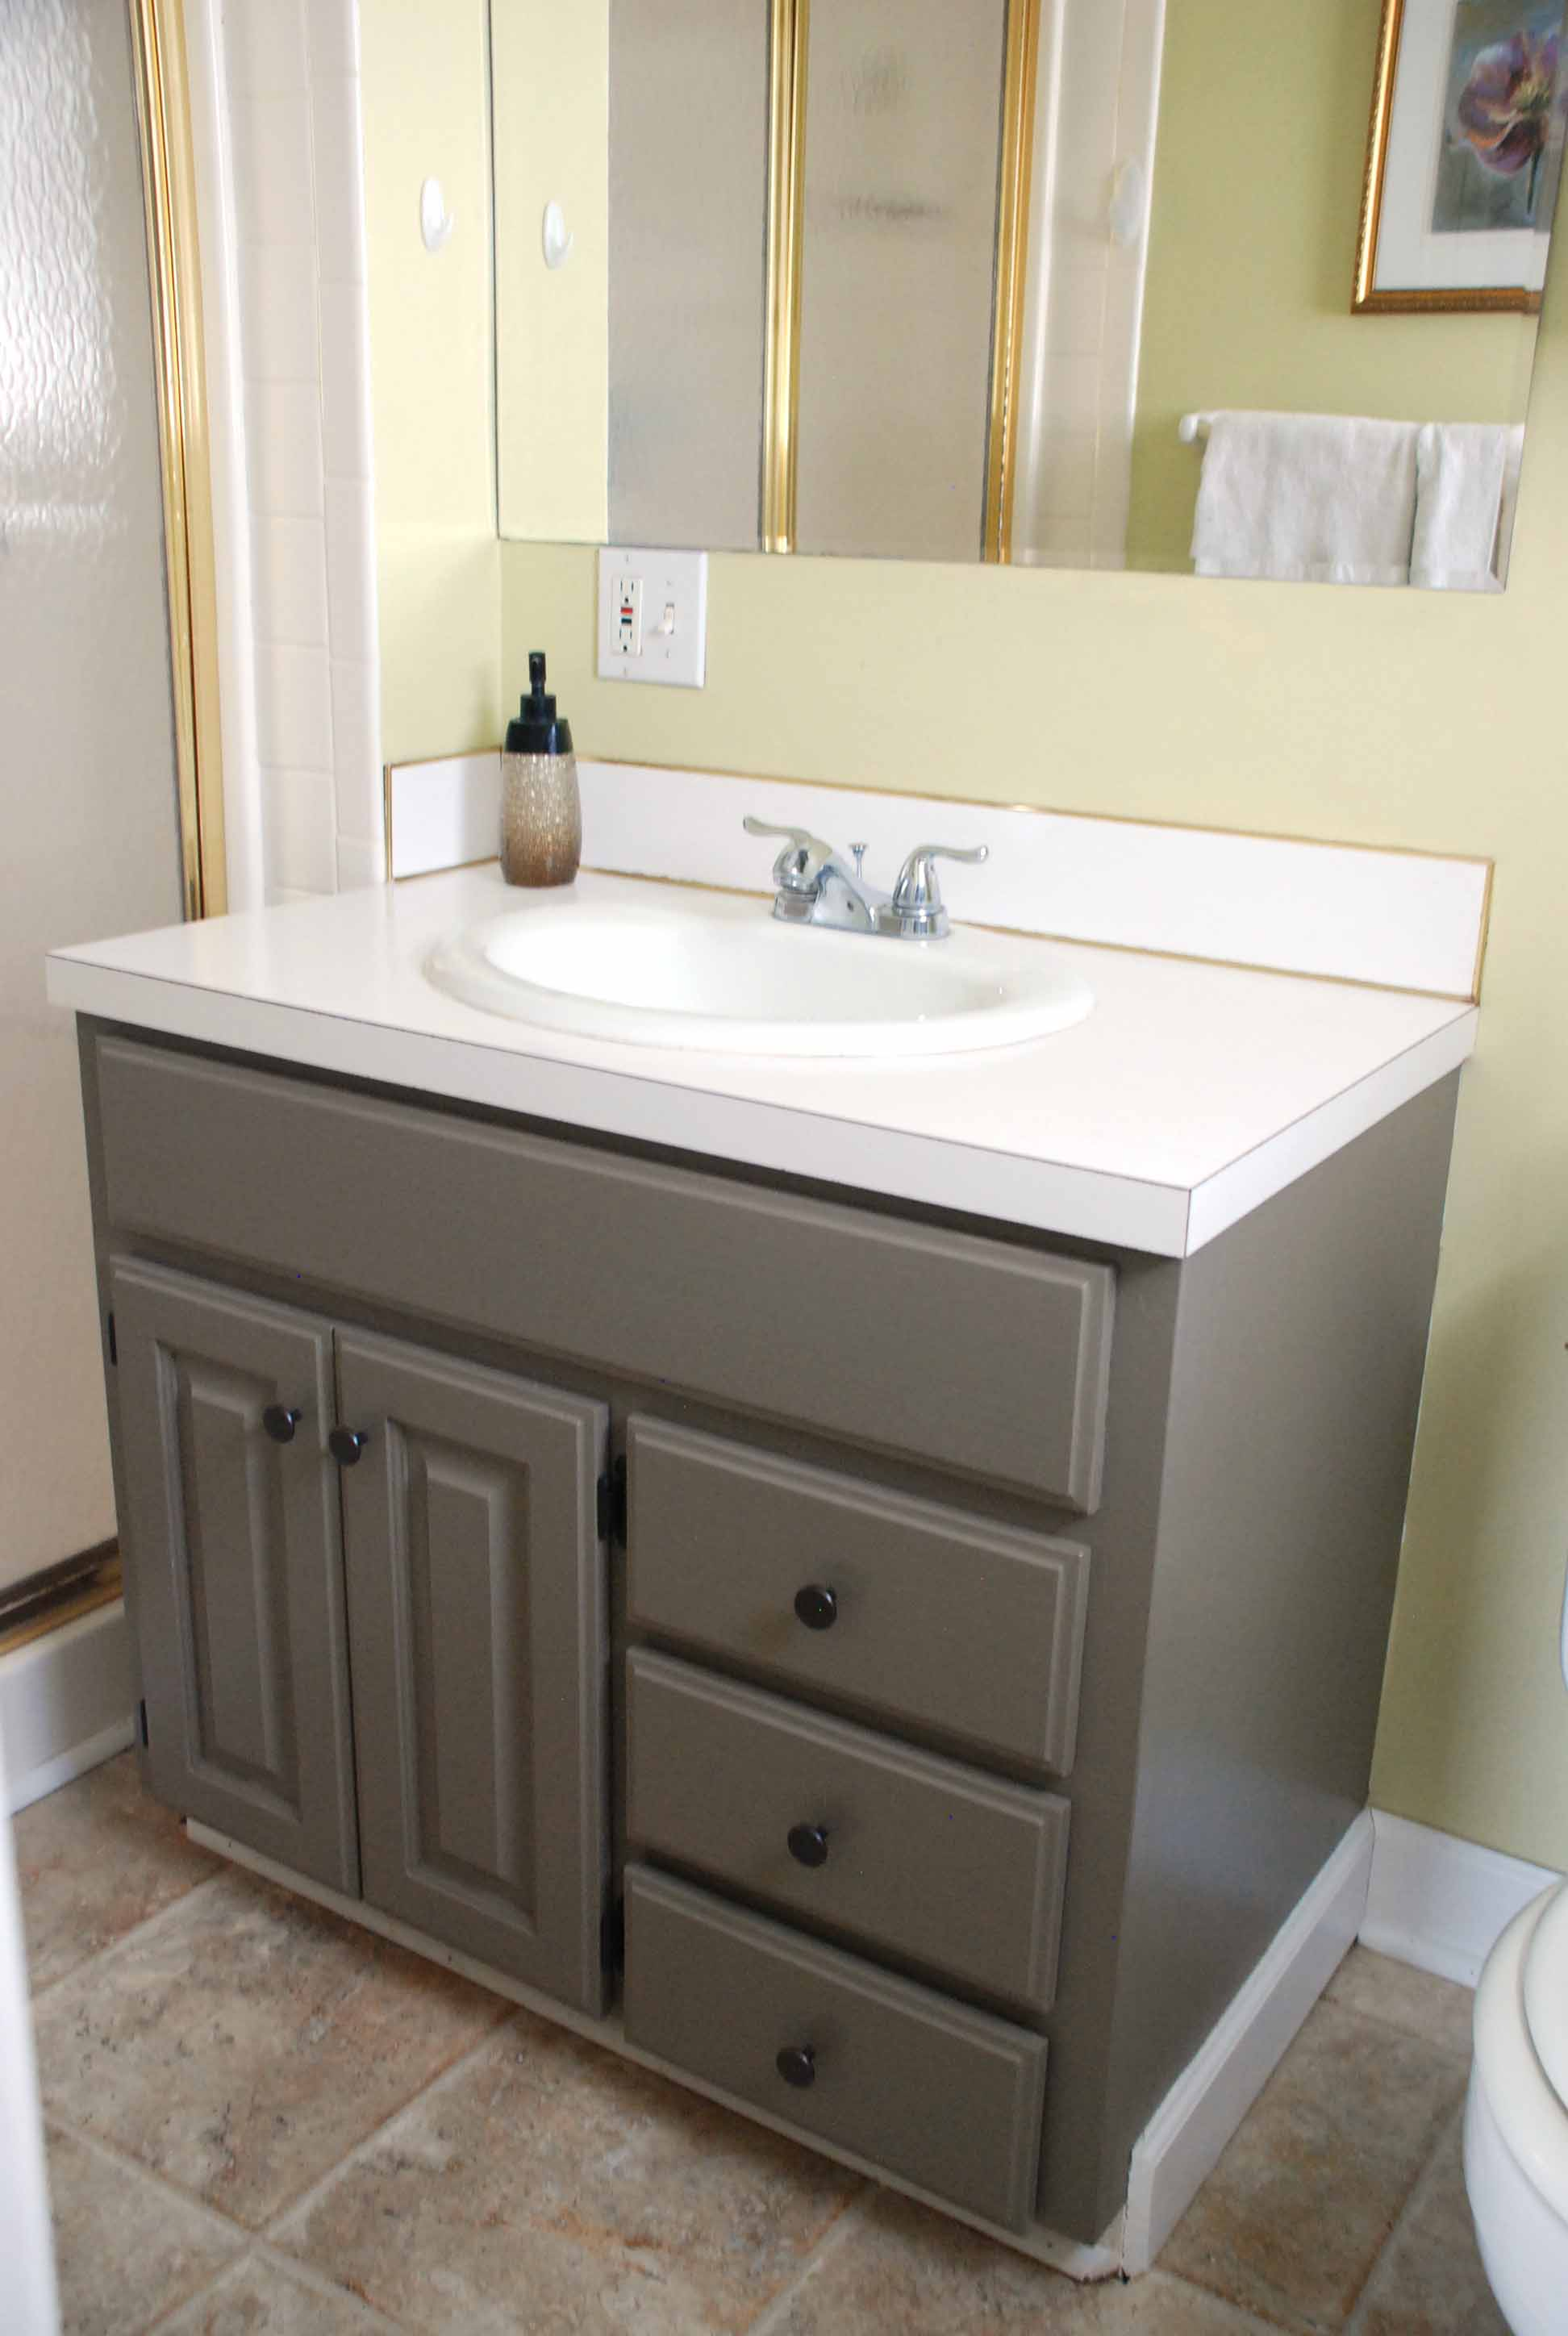 Painting A Bathroom Vanity And Cabinet And Spray Painting